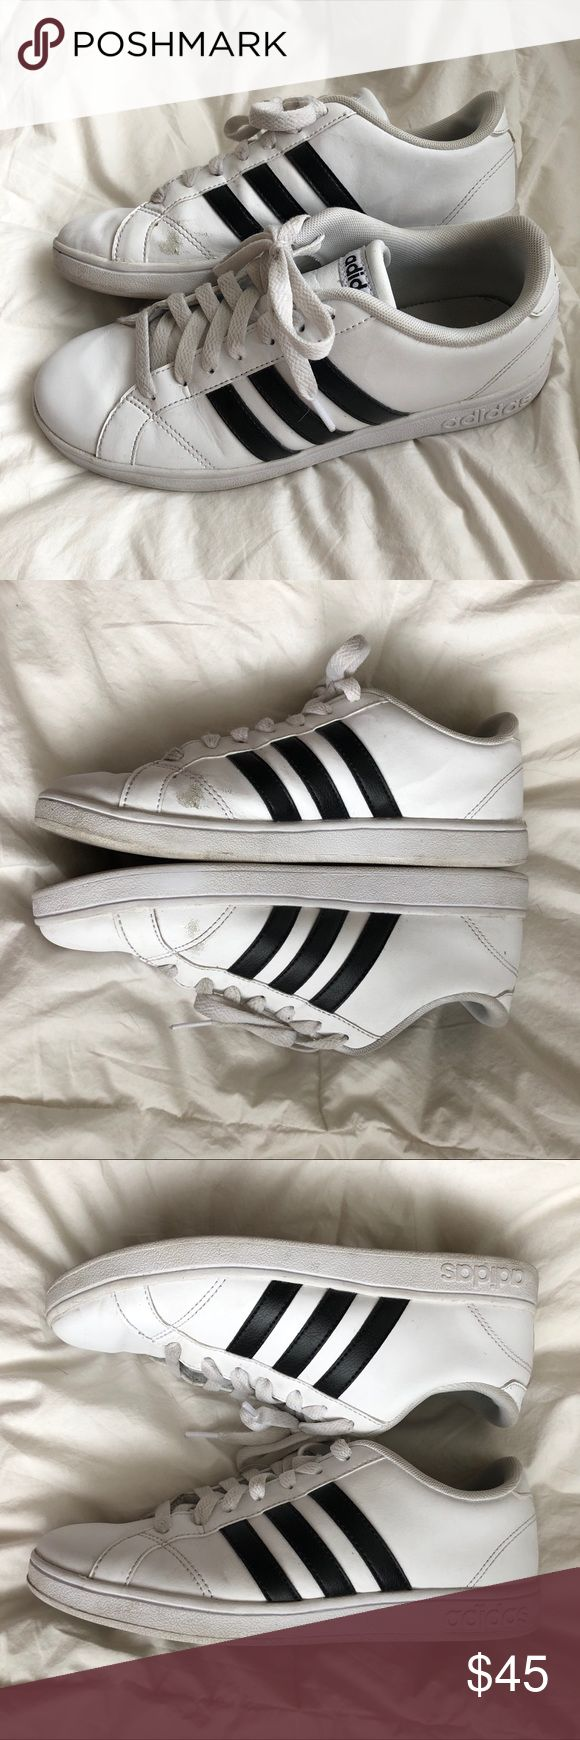 ADIDAS Neo Cloudfoam Advantage Shoes Size 8 Adidas Neo Cloudfoam shoes in size women's 8 (men's 6.5). White with black stripes. Please see photos - they show signs of wear, especially the inner toes of both shoes. Does not come in original box.   📬 Fast shipping  📦 10% for bundles of 3+ 🛍Reasonable offers are always welcome adidas Shoes Athletic Shoes